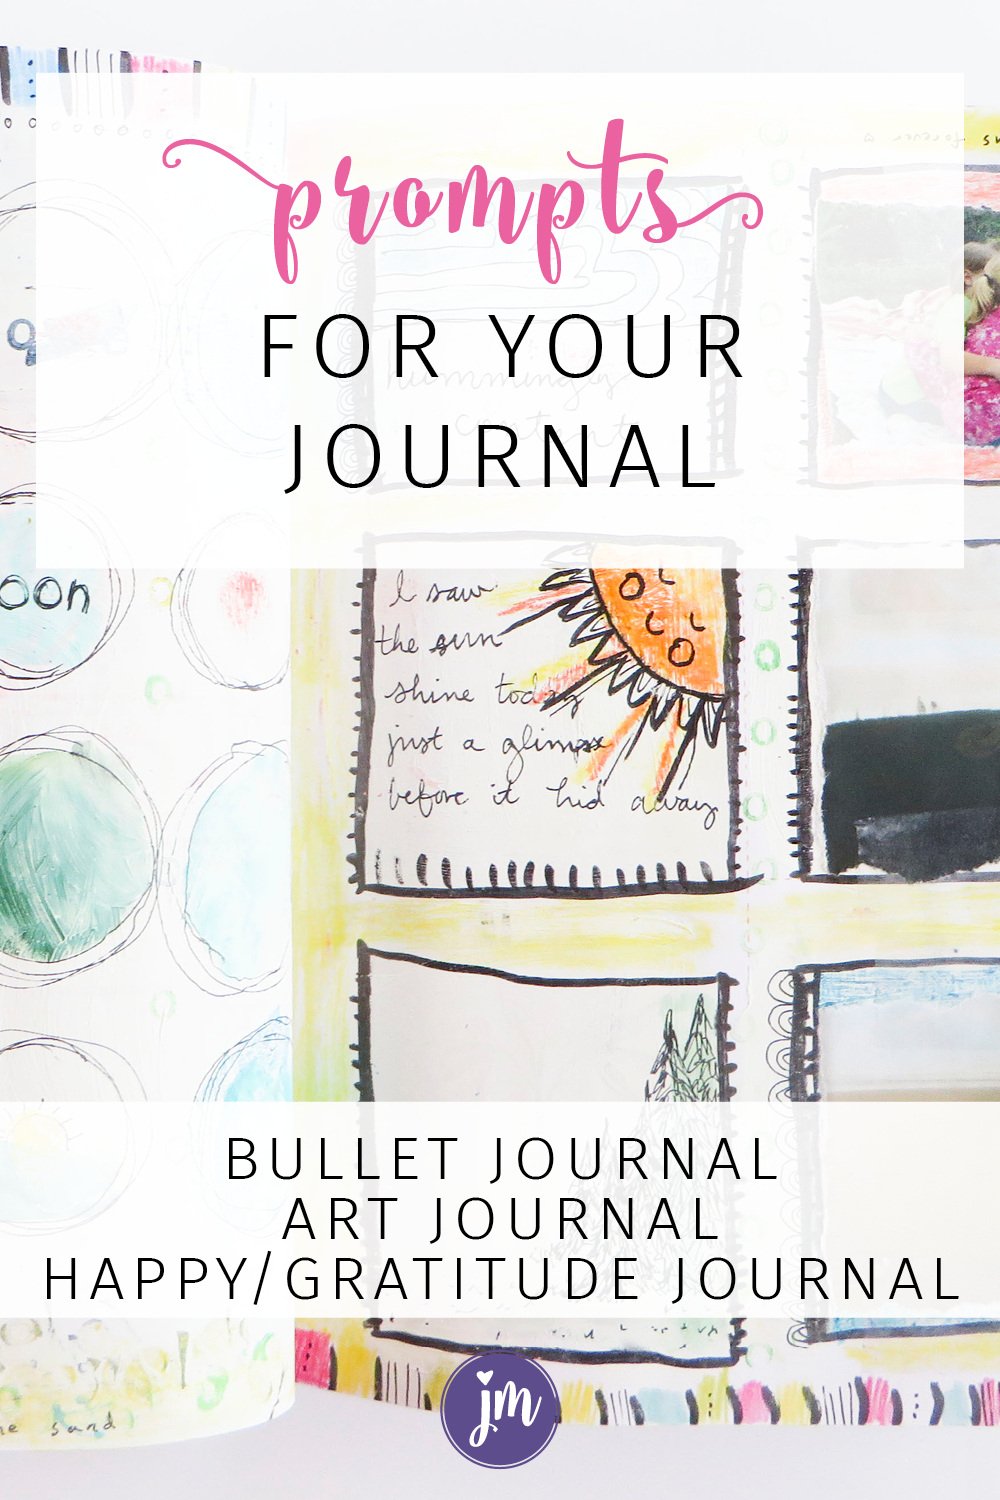 Looking for journal prompts? I LOVE this idea and have been doing it in my happy journal for the last week or so. It looks so amazing! These prompts also work great for bullet journals, dot journals, art journals, and gratitude journals. Try it!